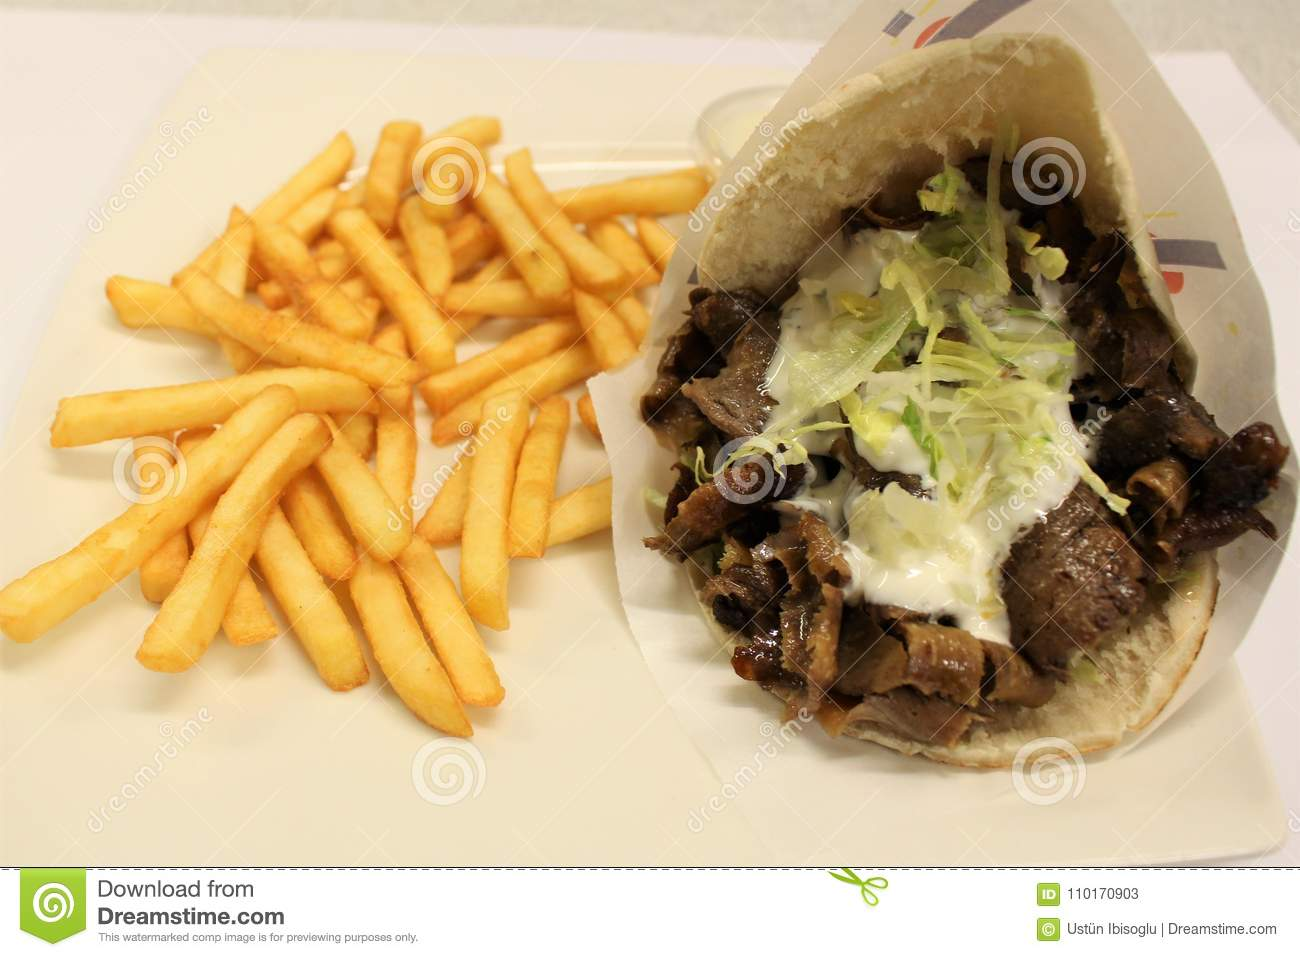 Pita Doner Meat Menu Turkish Kebab Menu Served On A Plate Stock Image Image Of Kebab French 110170903